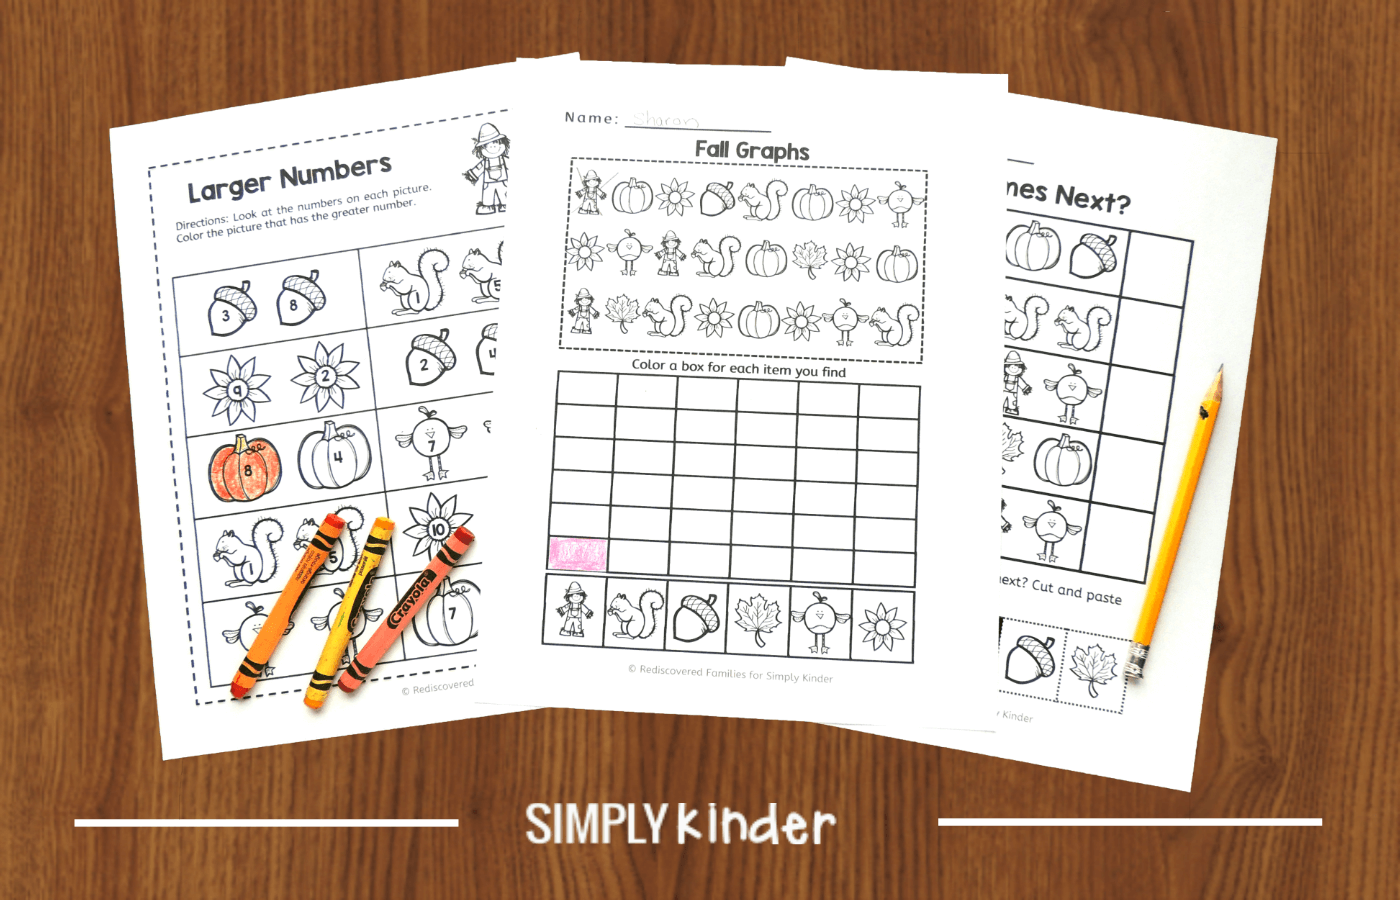 hight resolution of Free Fall Math Worksheets To Use With Kinders - Simply Kinder